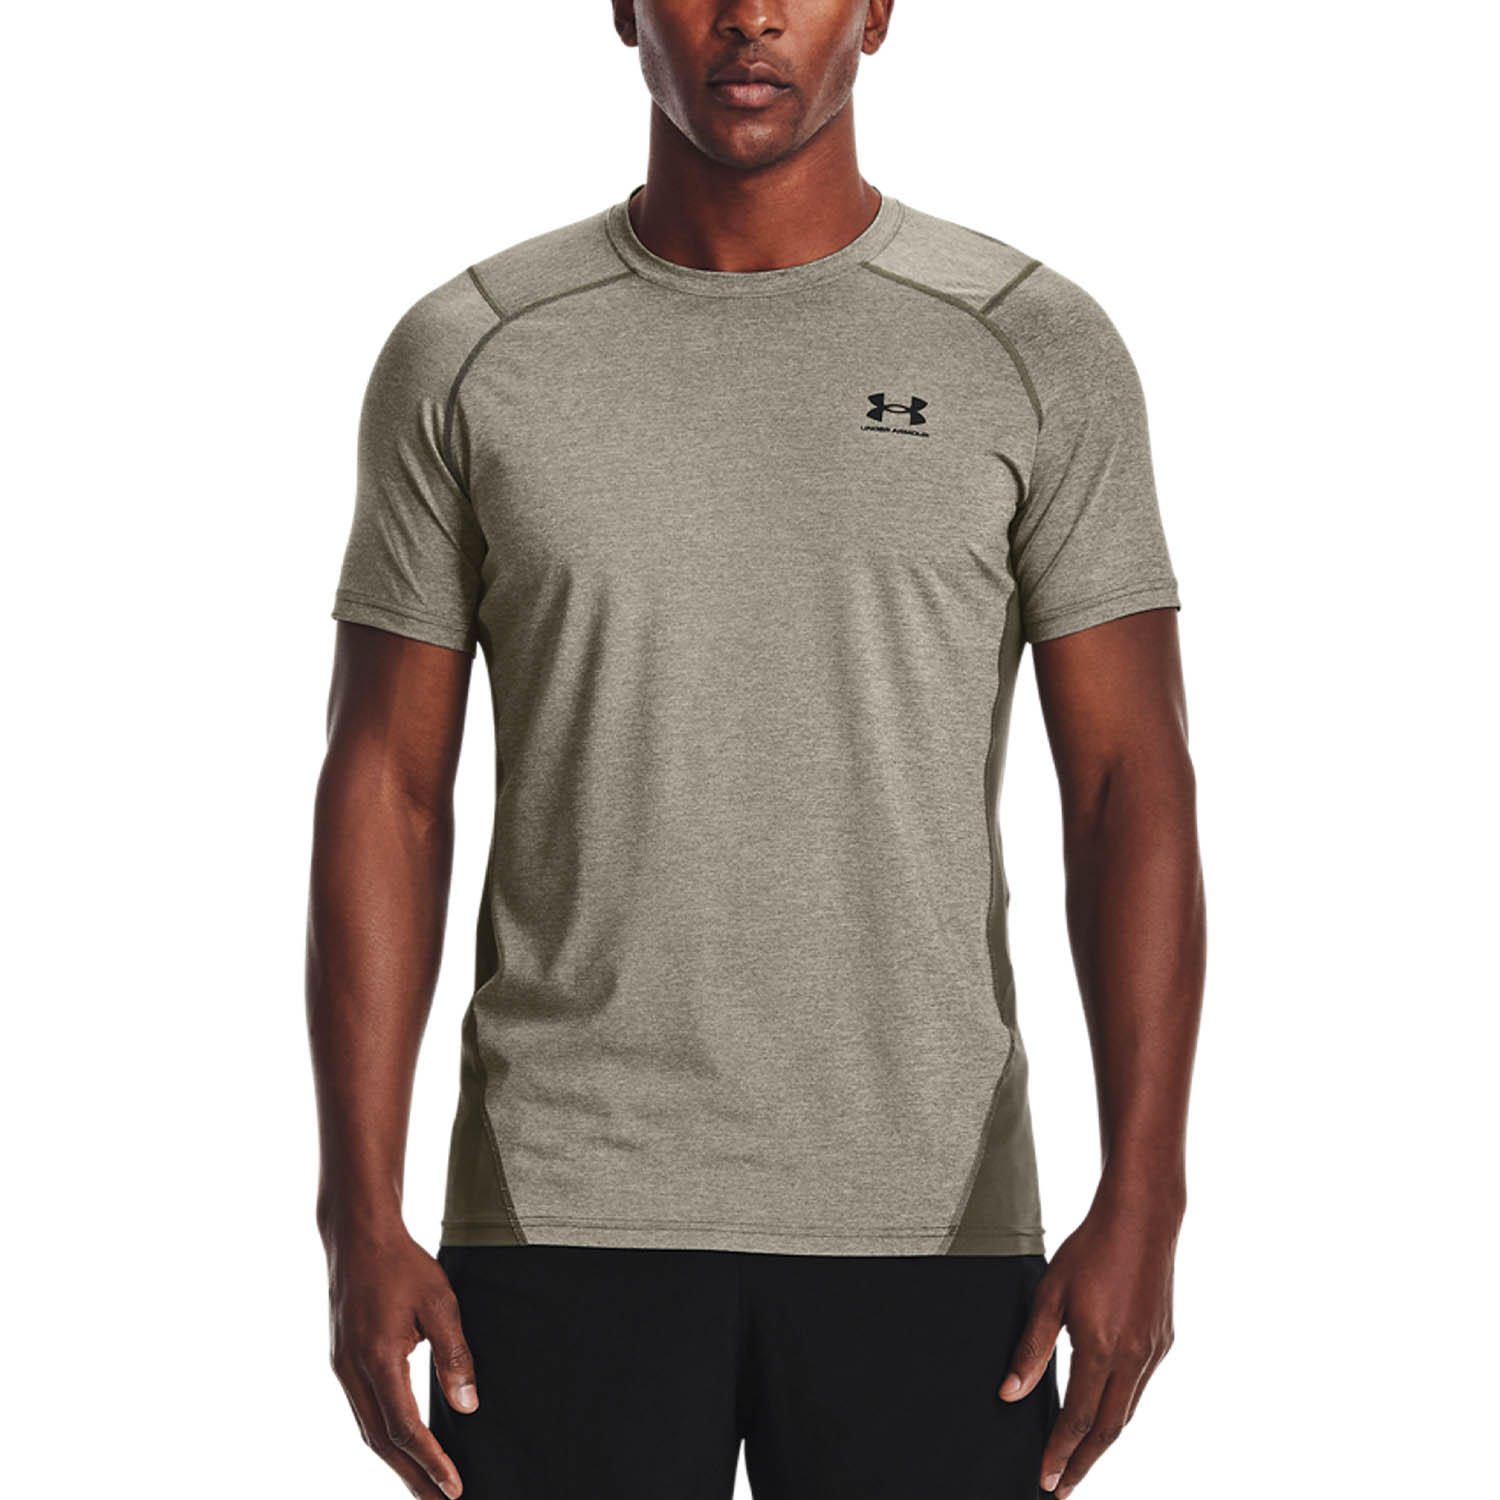 Under Armour HeatGear Knit T-Shirt - Victory Green Light Heather/Black